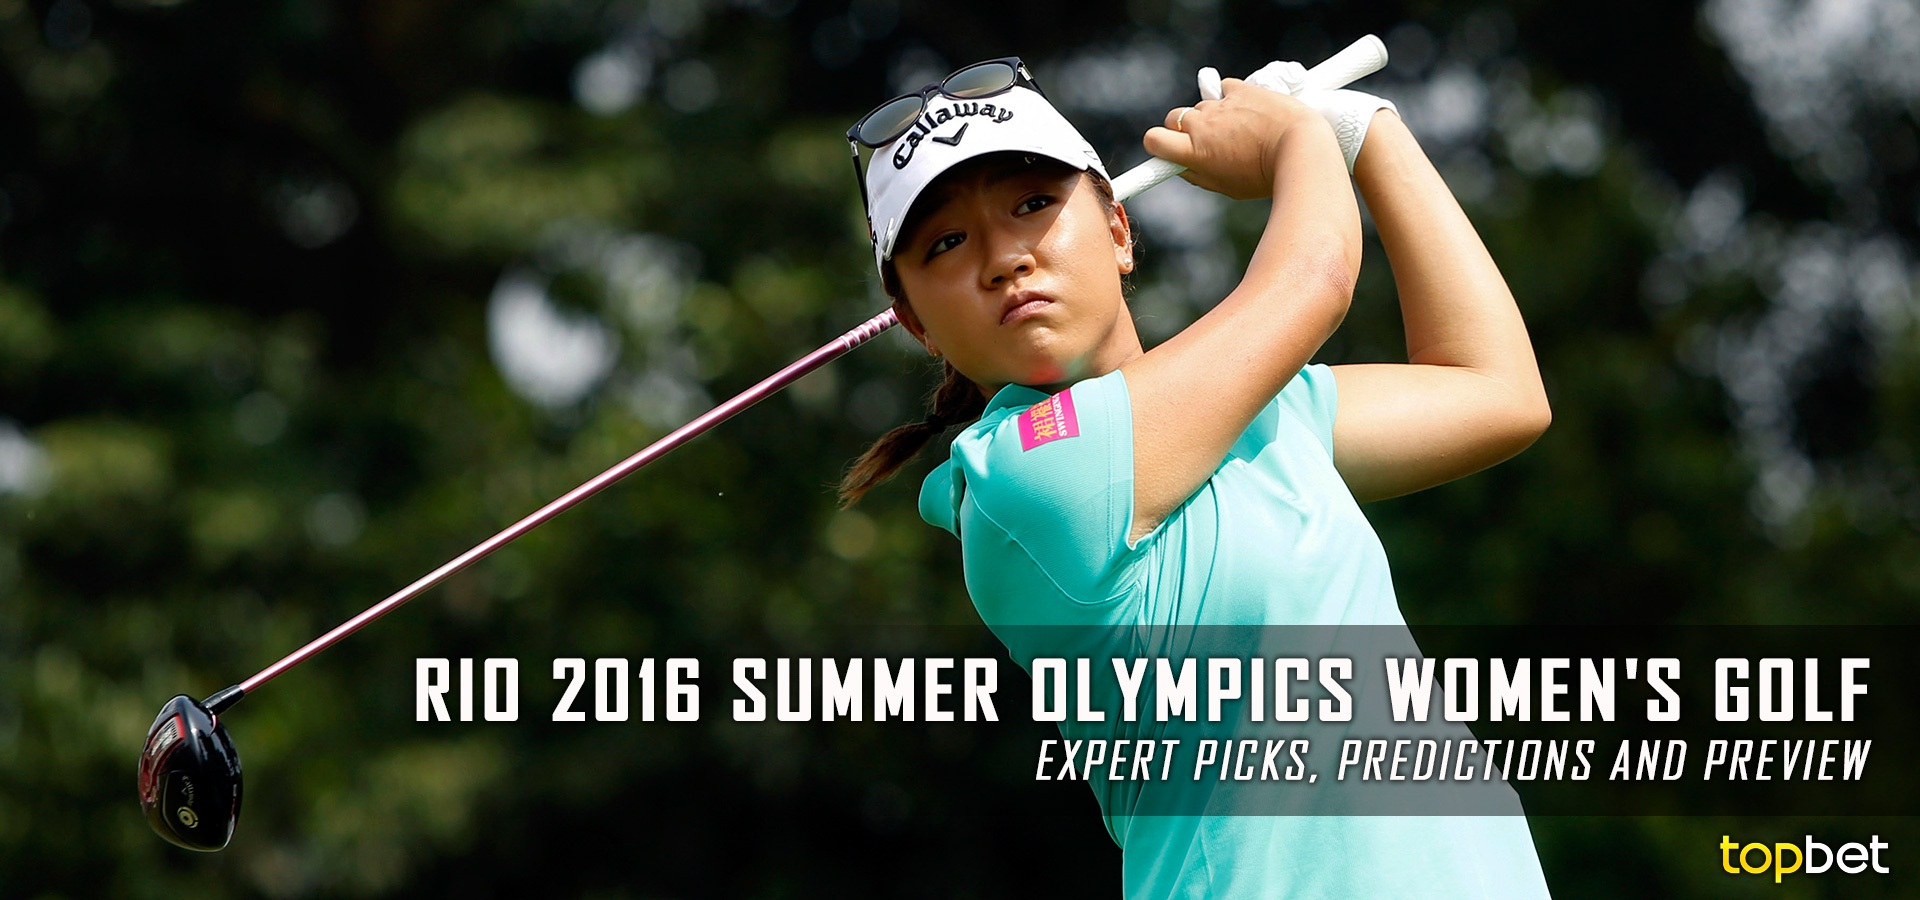 Rio 2016 Summer Olympic Women's Golf Expert Picks and Preview